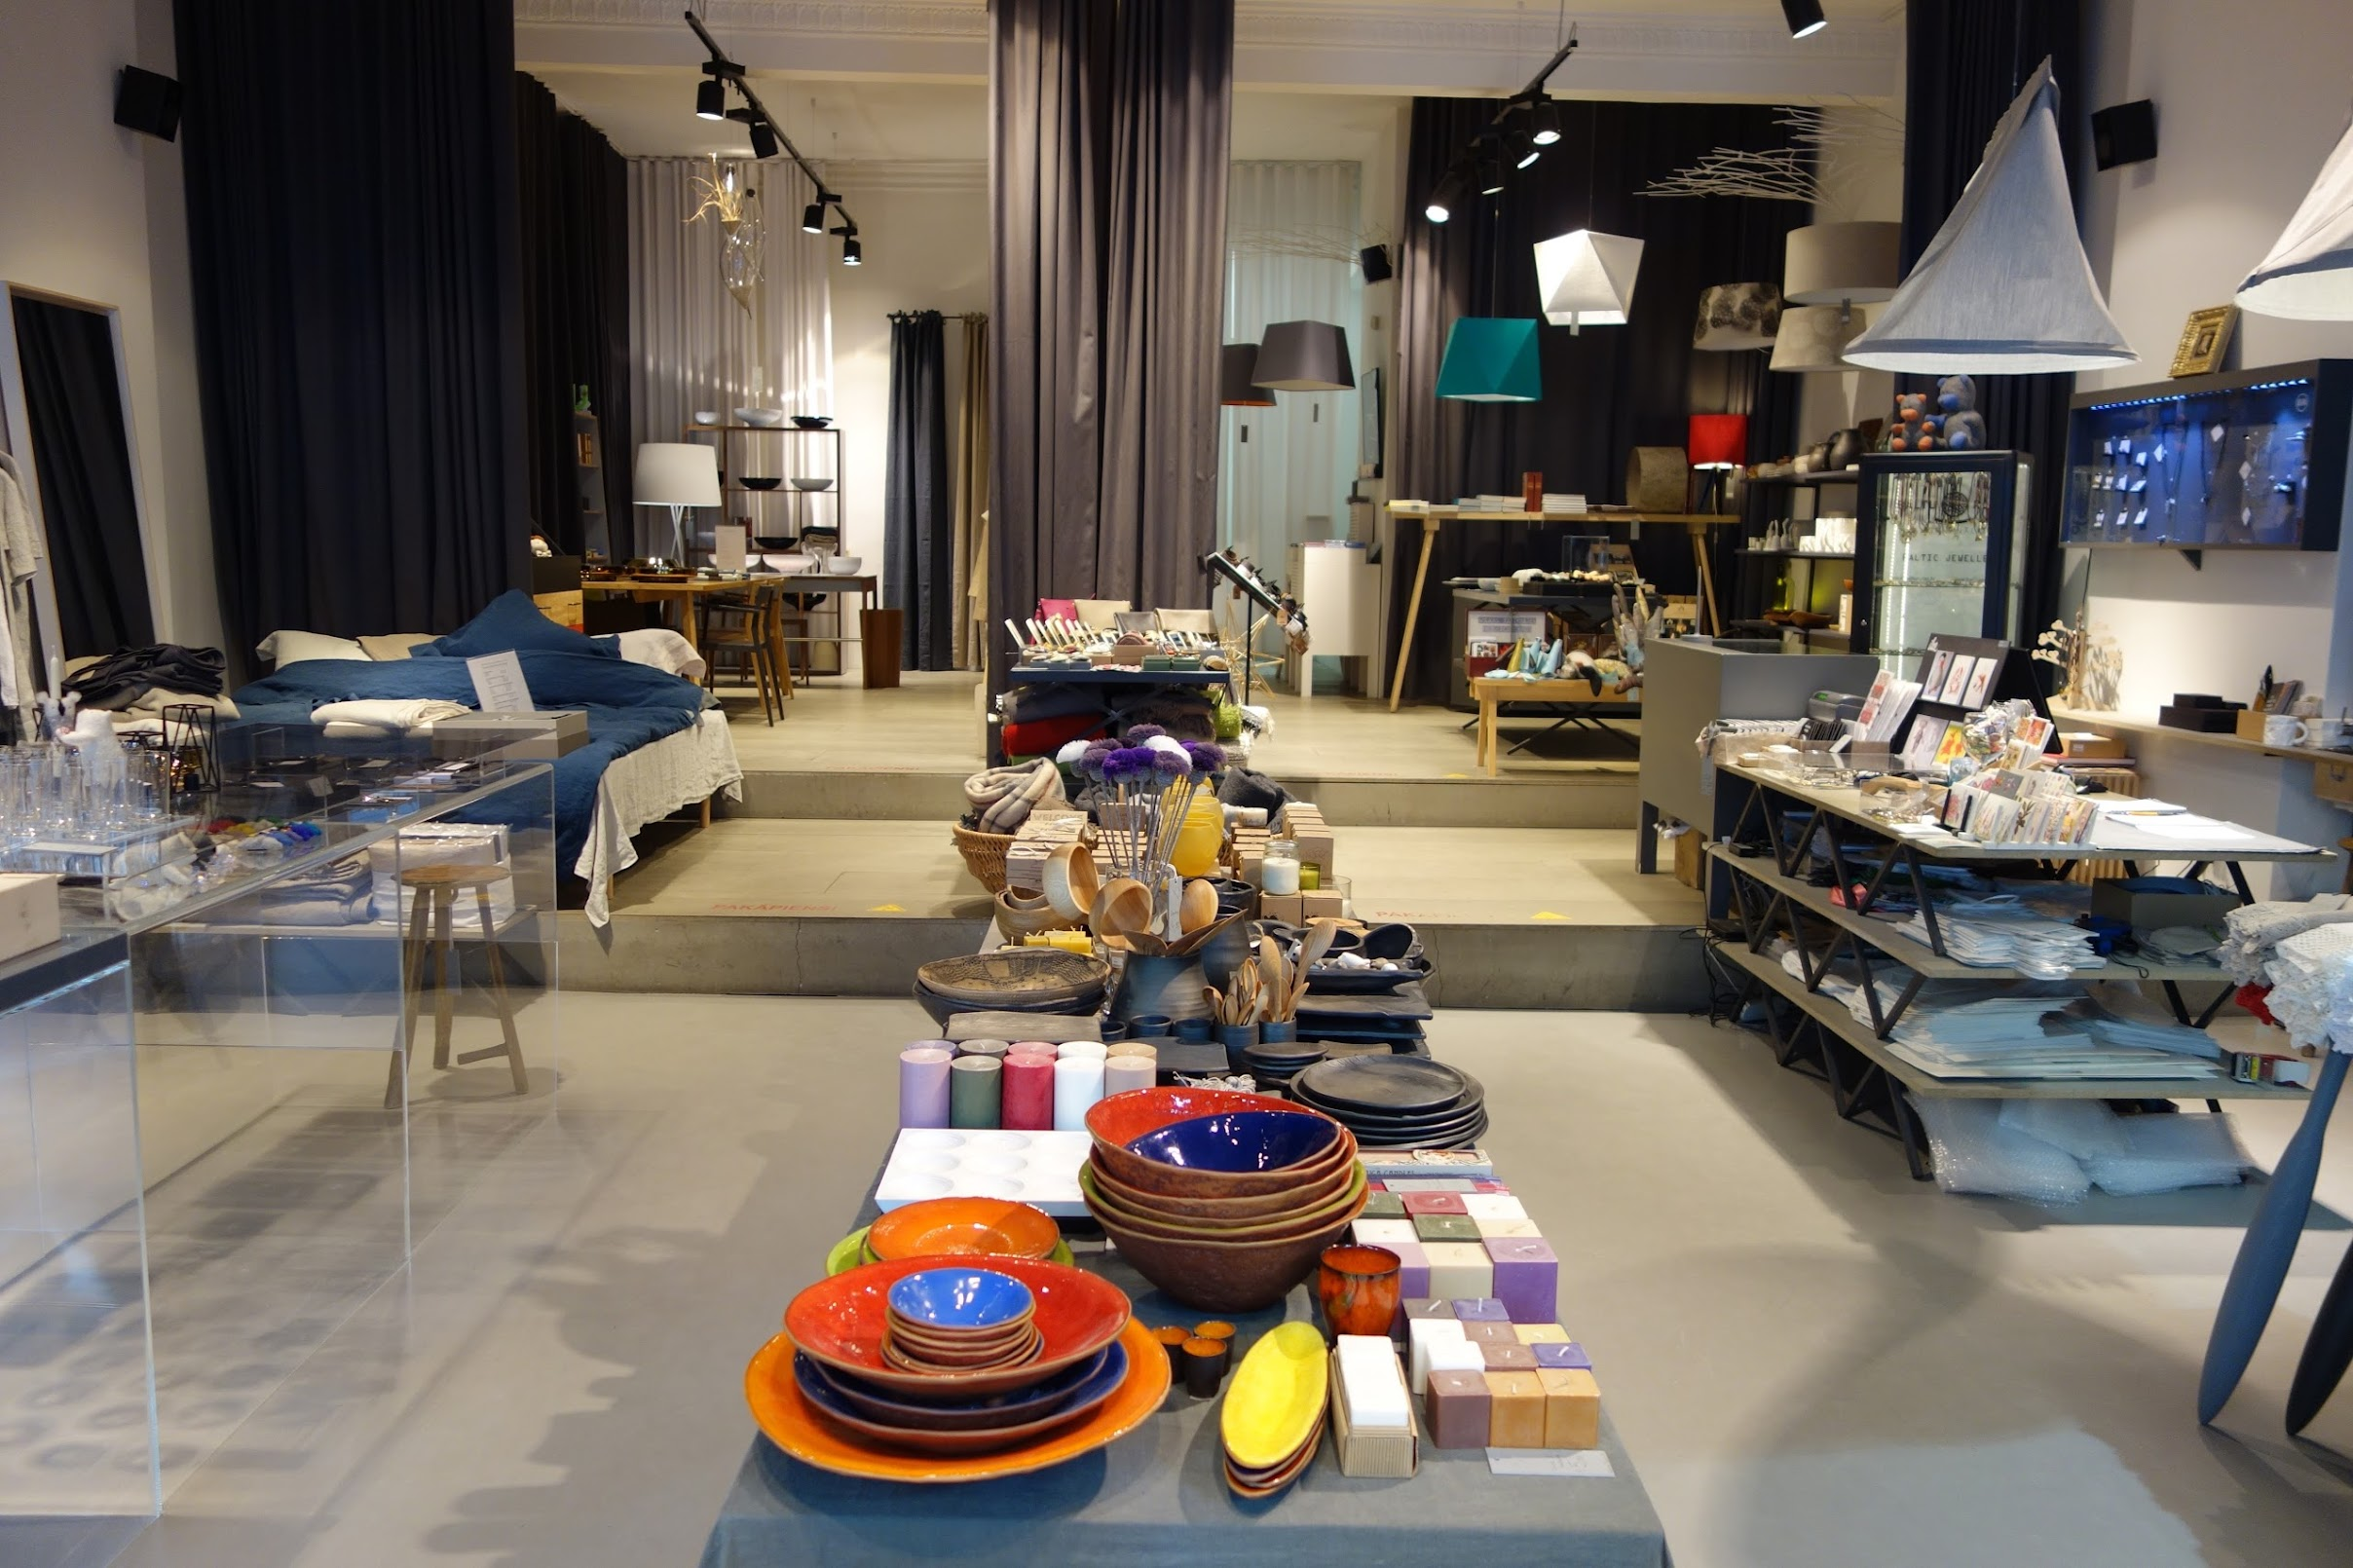 Shopping at Rija, Riga, Latvia